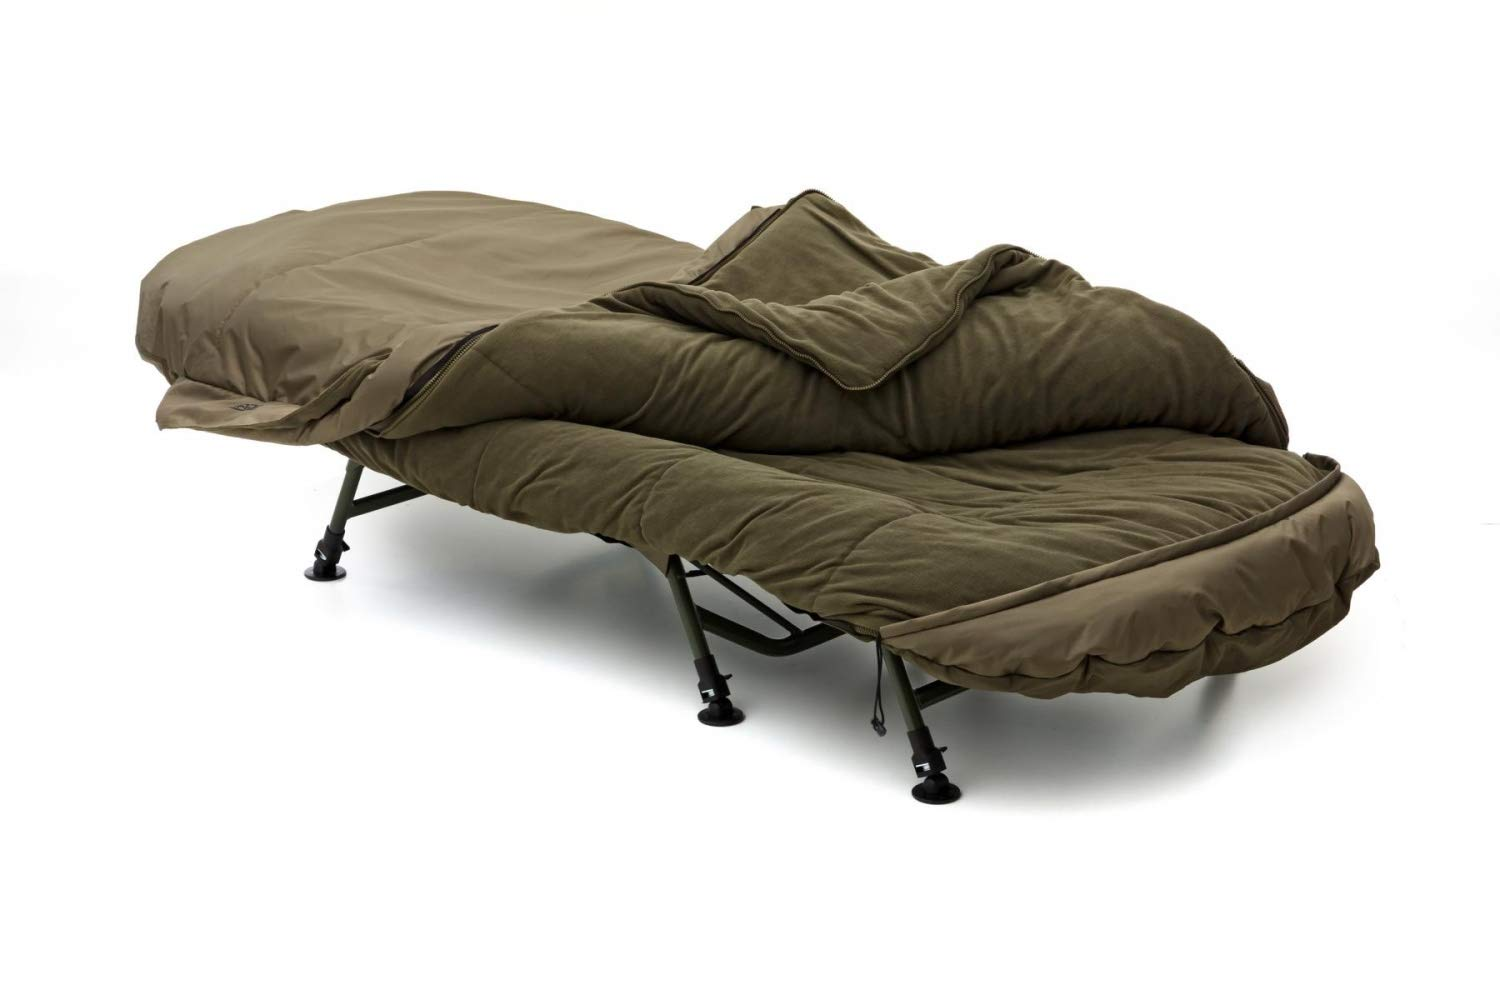 MAD E-Xtreme 5 Season Sleeping Bag Rstop